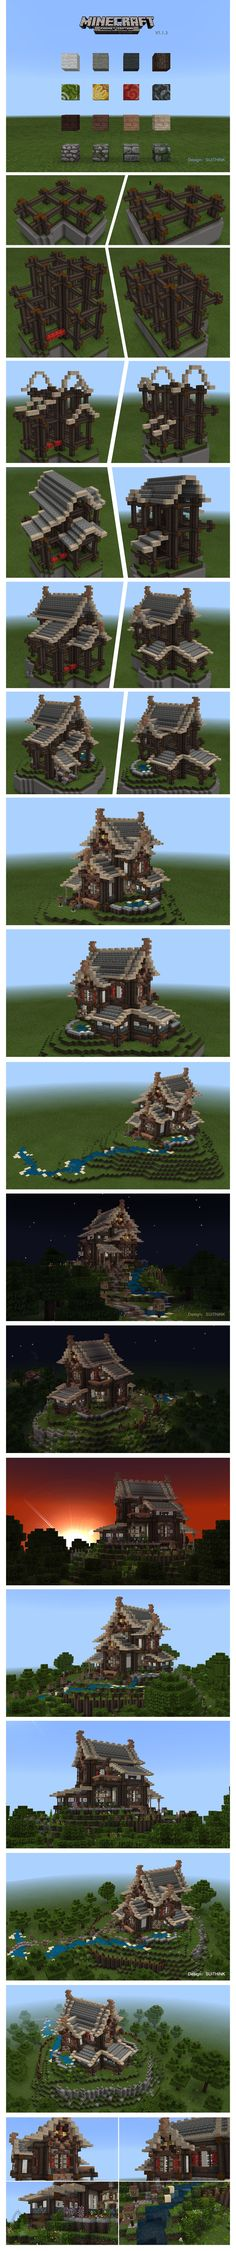 Cool Minecraft house tutorial.